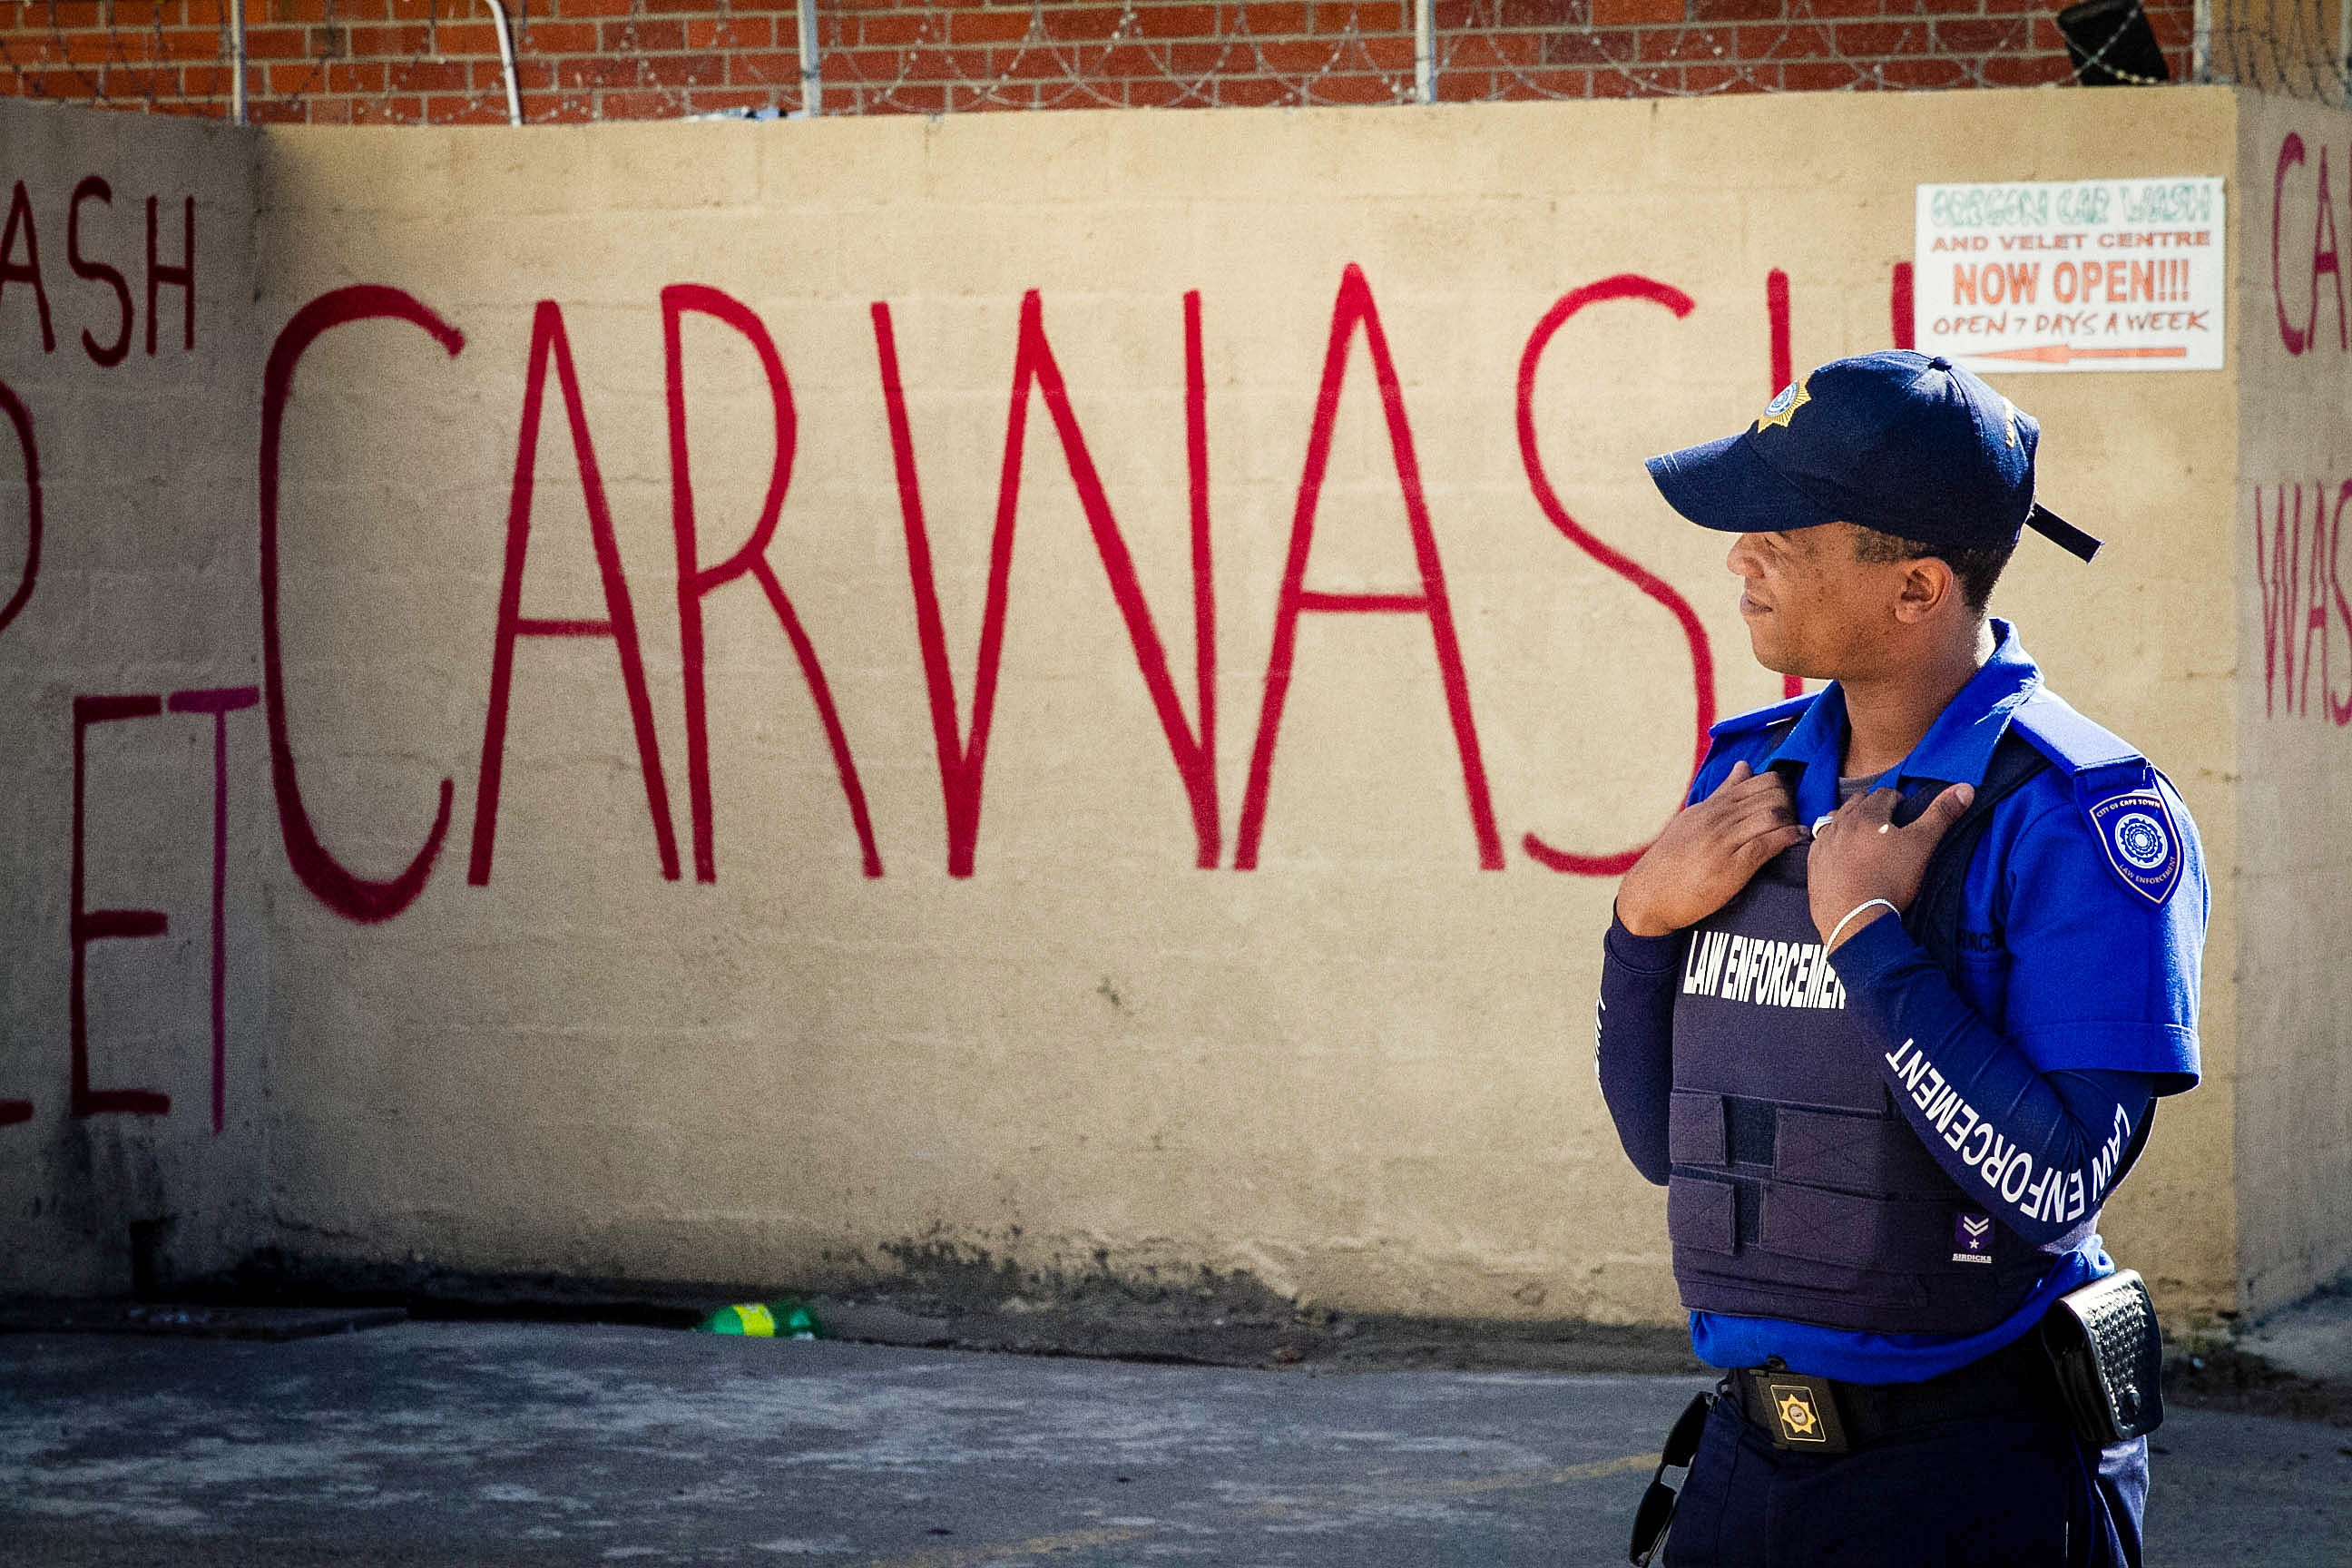 Police have been keeping a close eye on car washes, particularly makeshift operations in the townships and settlements. (Lily Martin/CBC)